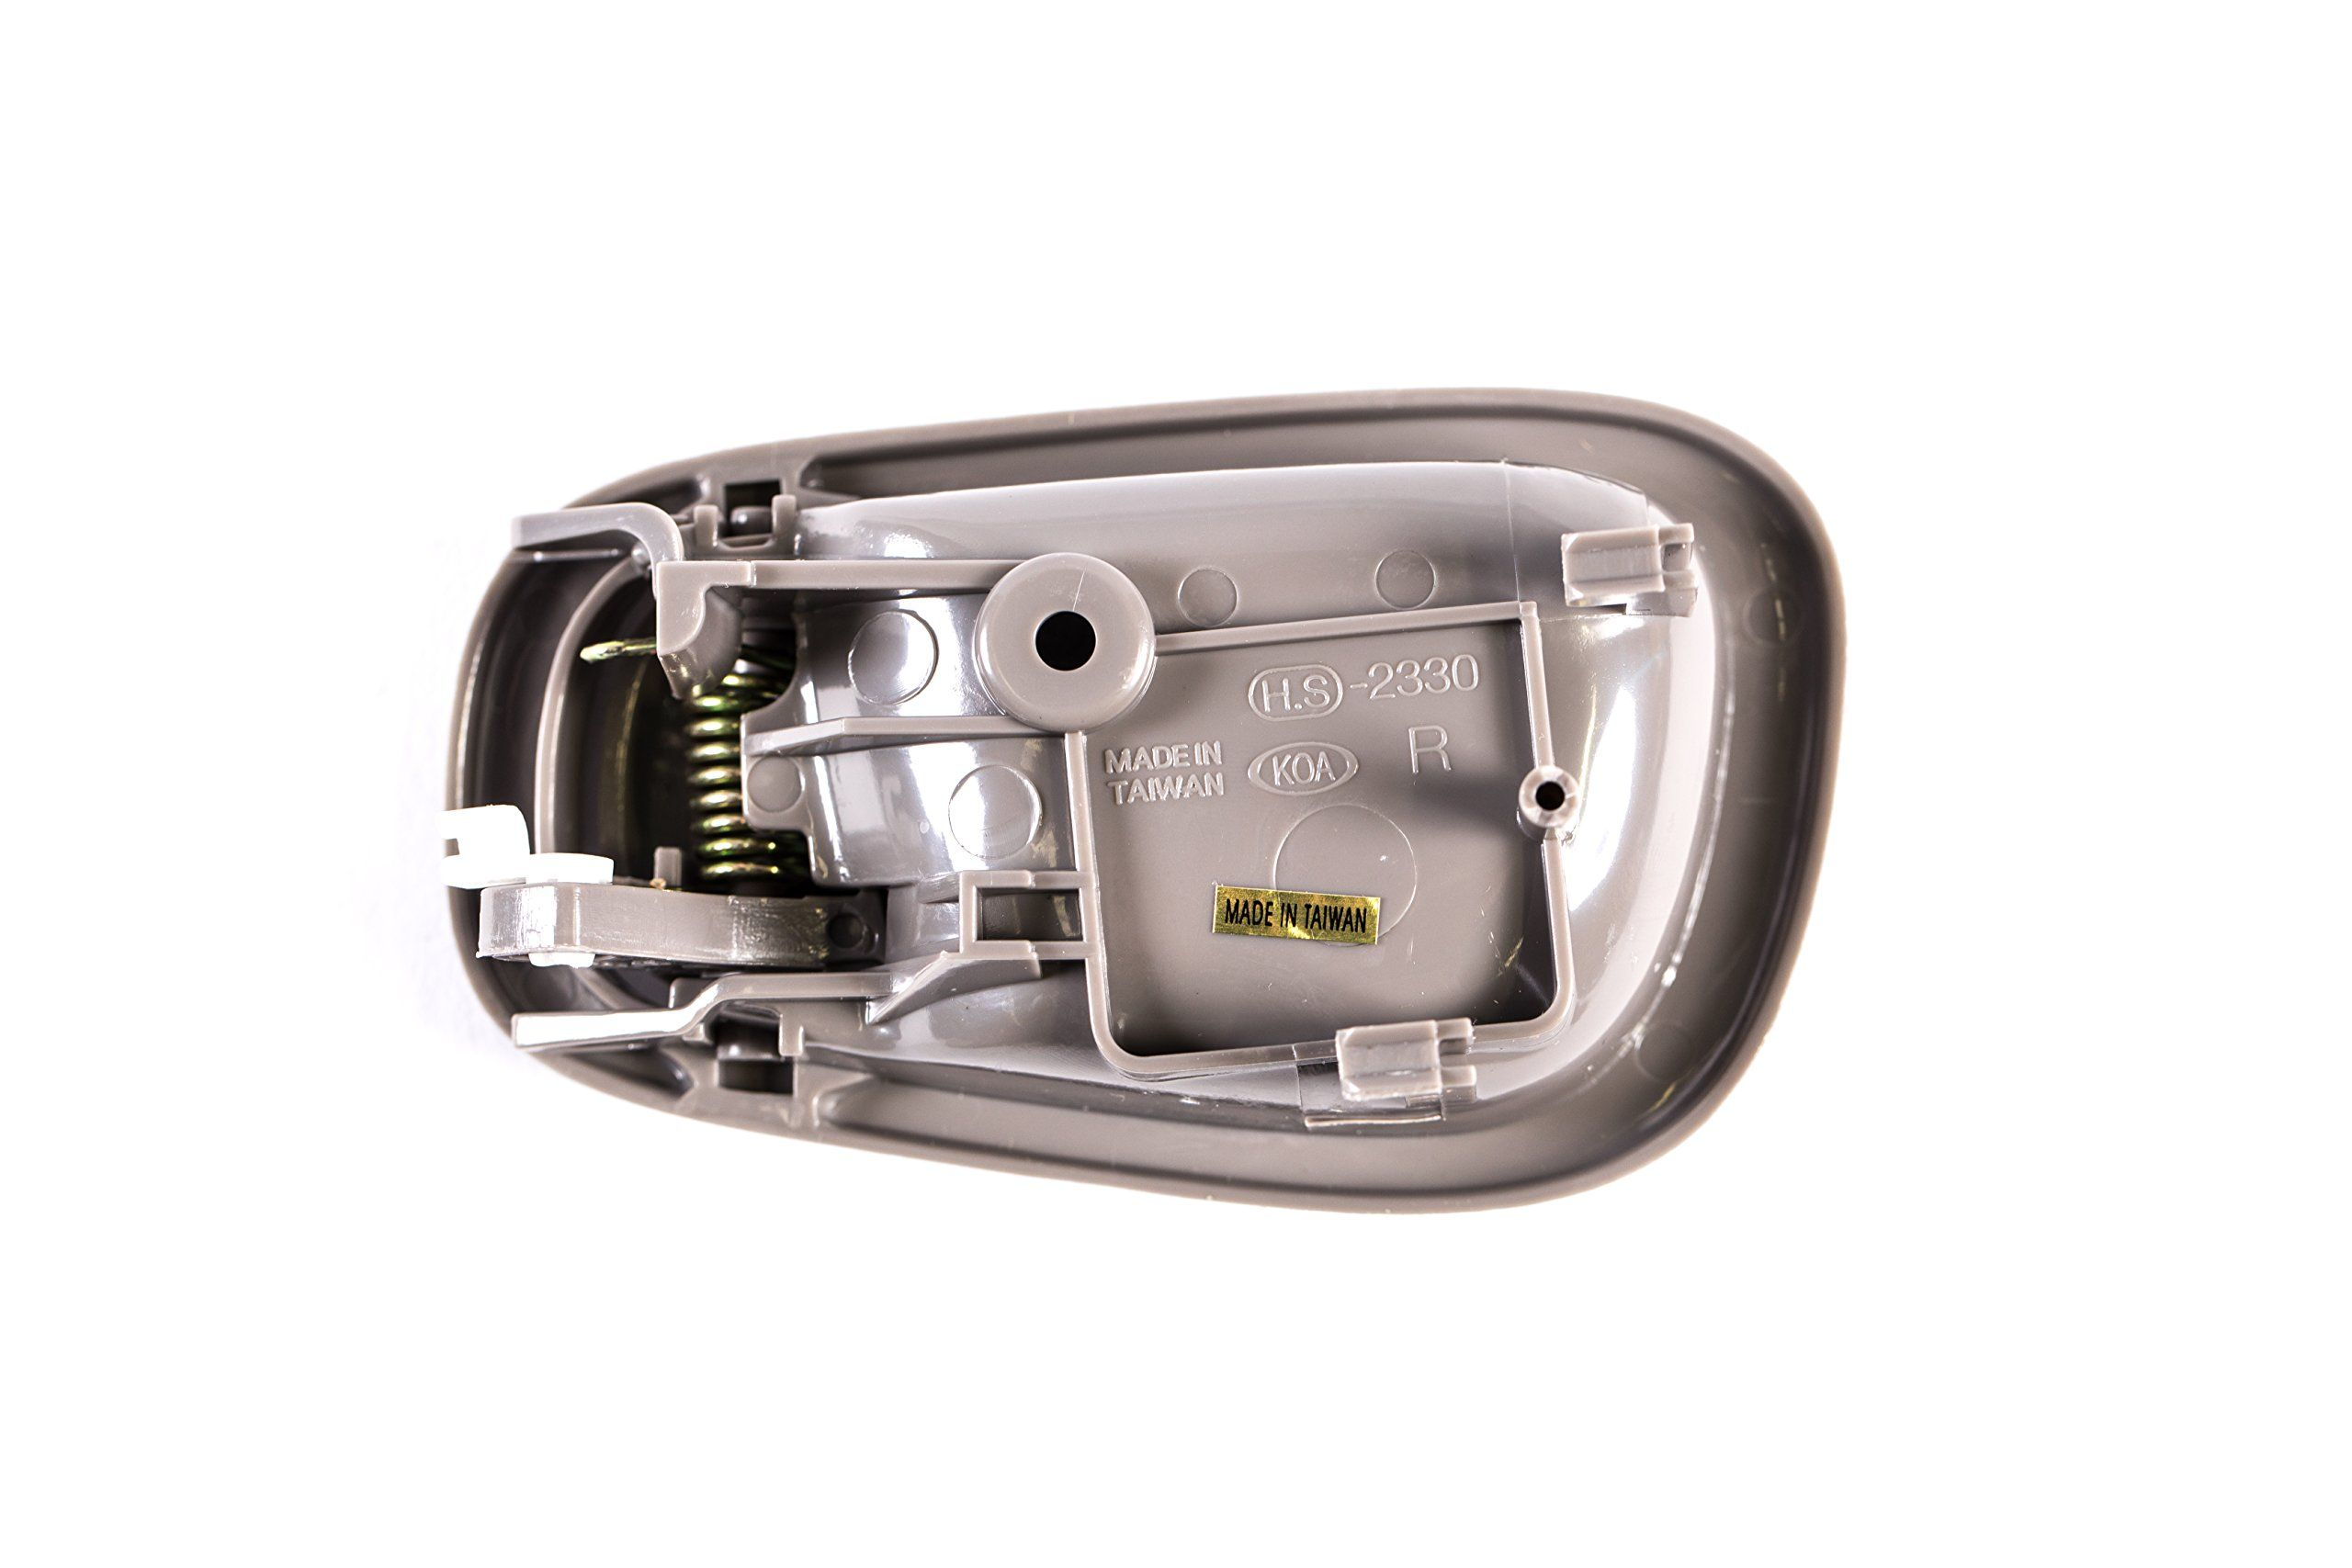 Replacement Front Right Passenger Side Gray Door Handle For 98 02 Toyota Corolla To1353165 1998 2000 2001 2002 Ad D Toyota Corolla Corolla Door Handles